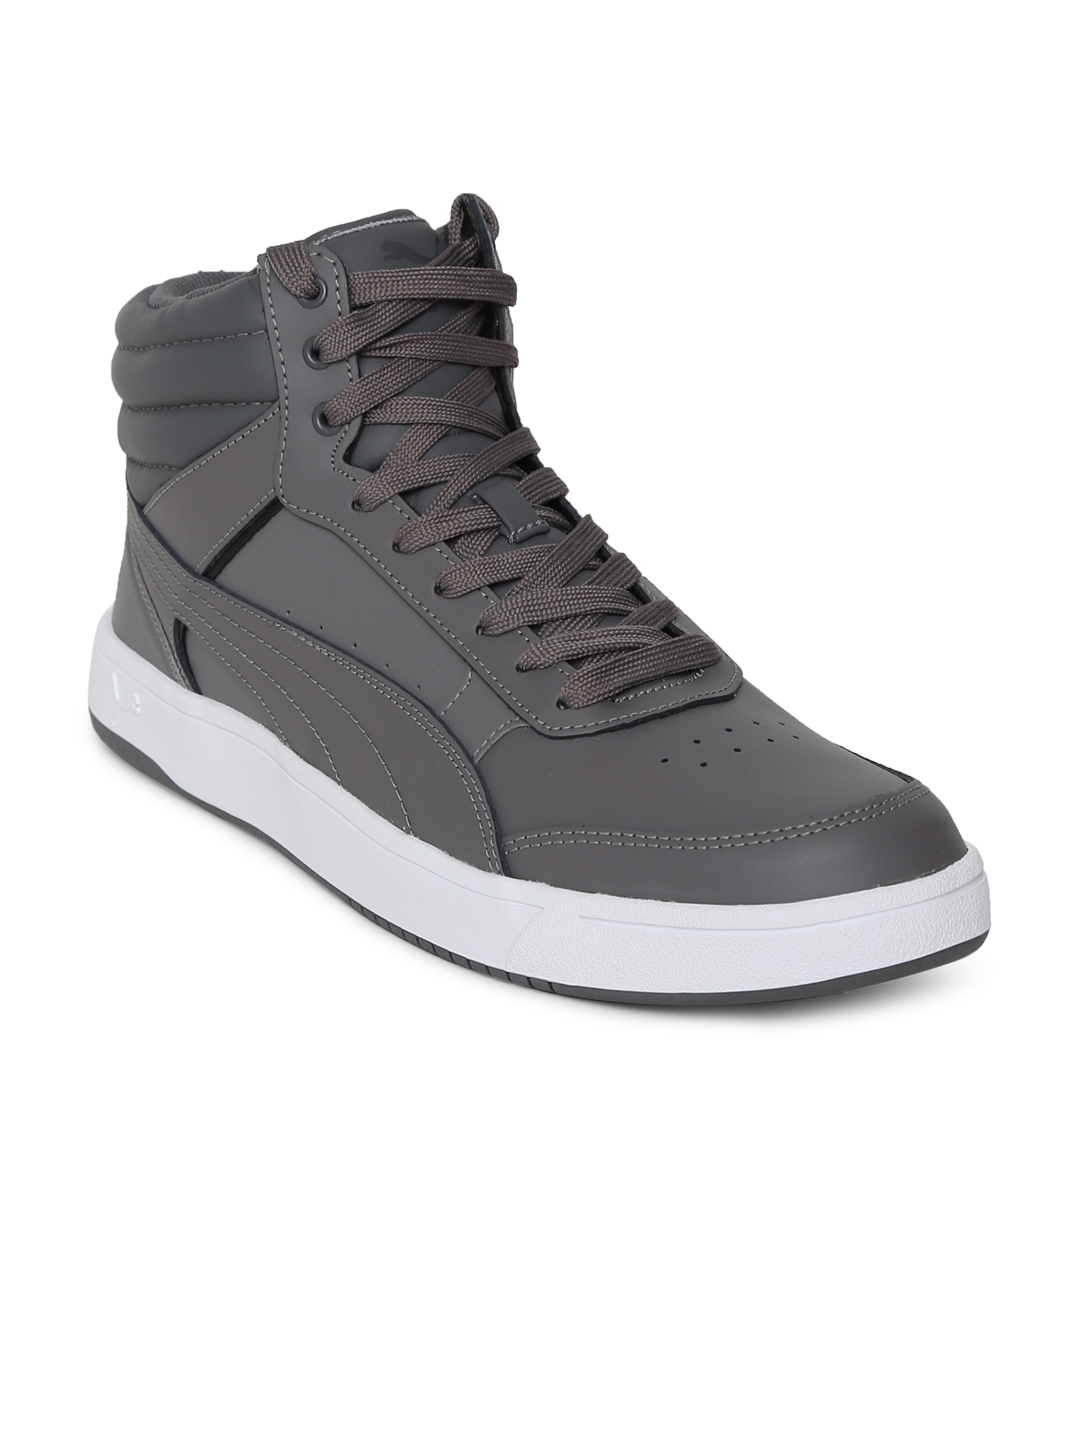 cf8b9b2ac69 Puma Men Grey Solid Leather Rebound Street v2 L IDP High-Top Sneakers